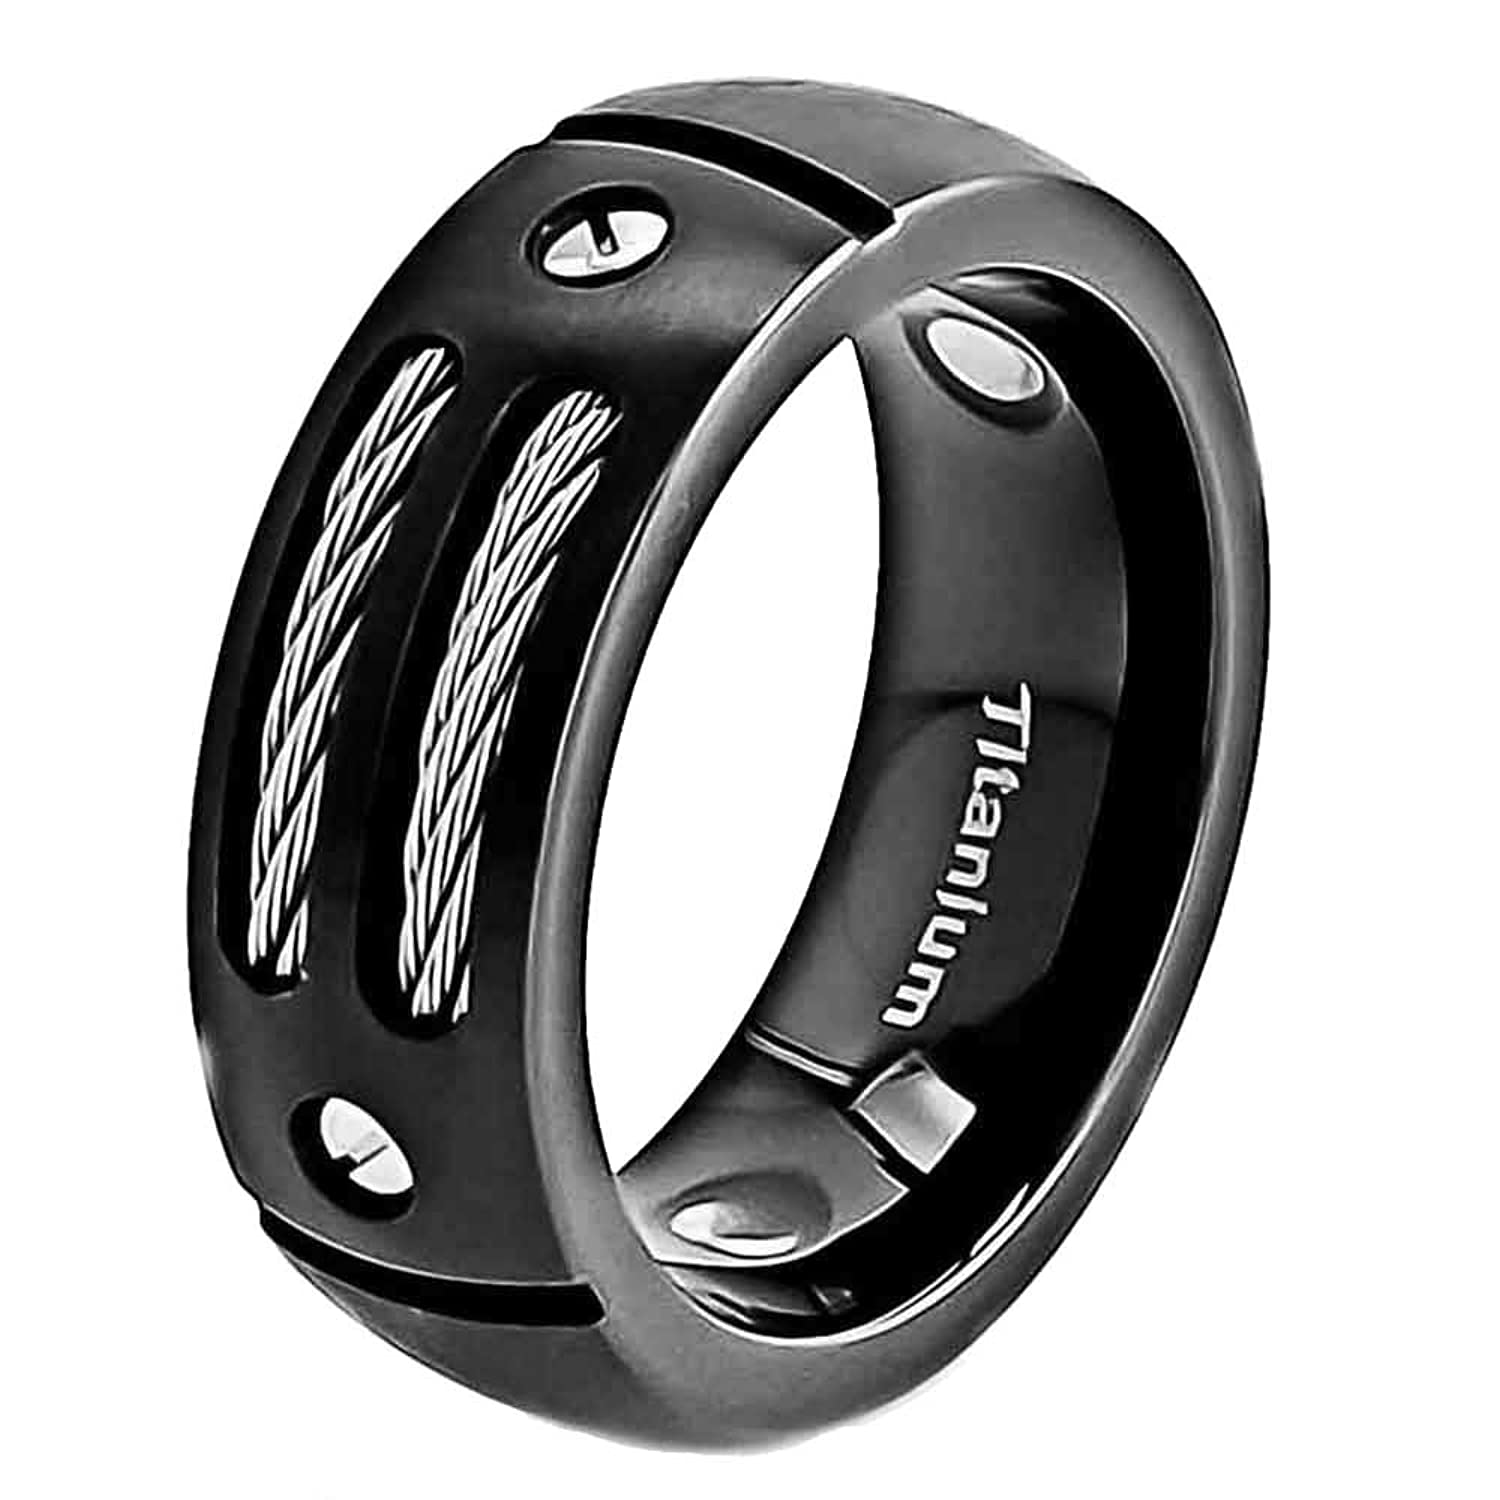 titanium wedding cz tir with resin fj jewelry linked mens bling inlay band ring bands